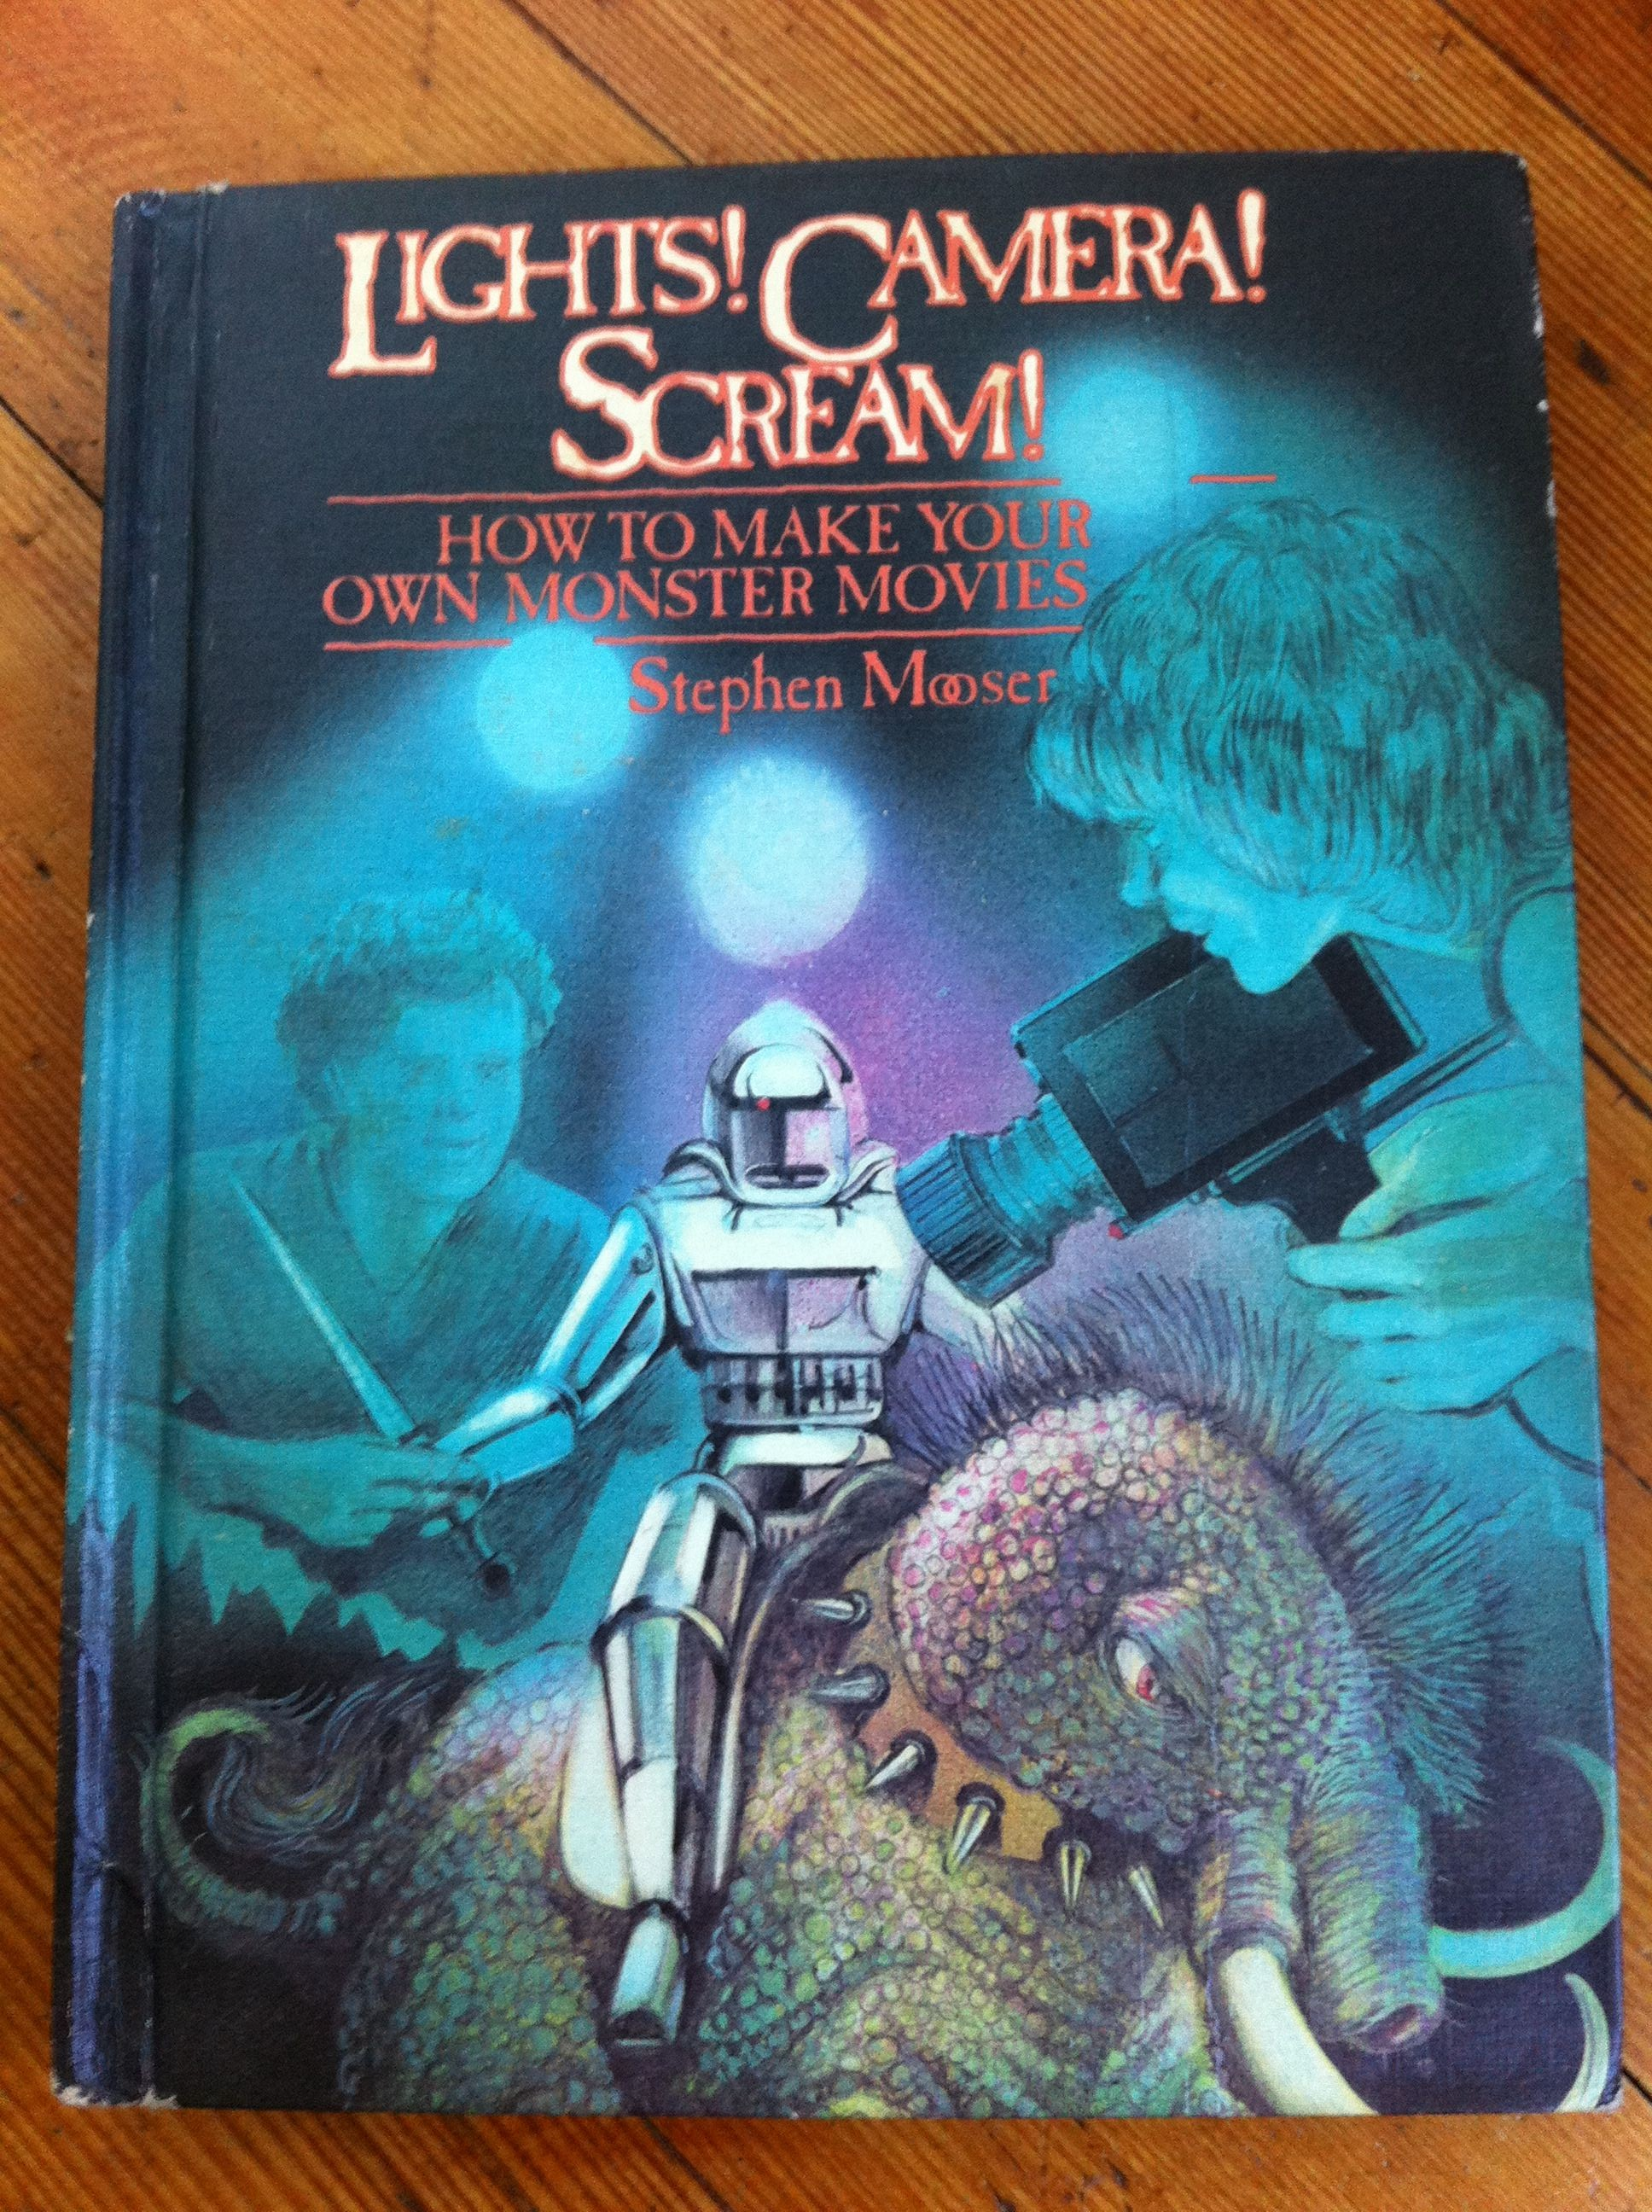 My favorite book, back in 1983